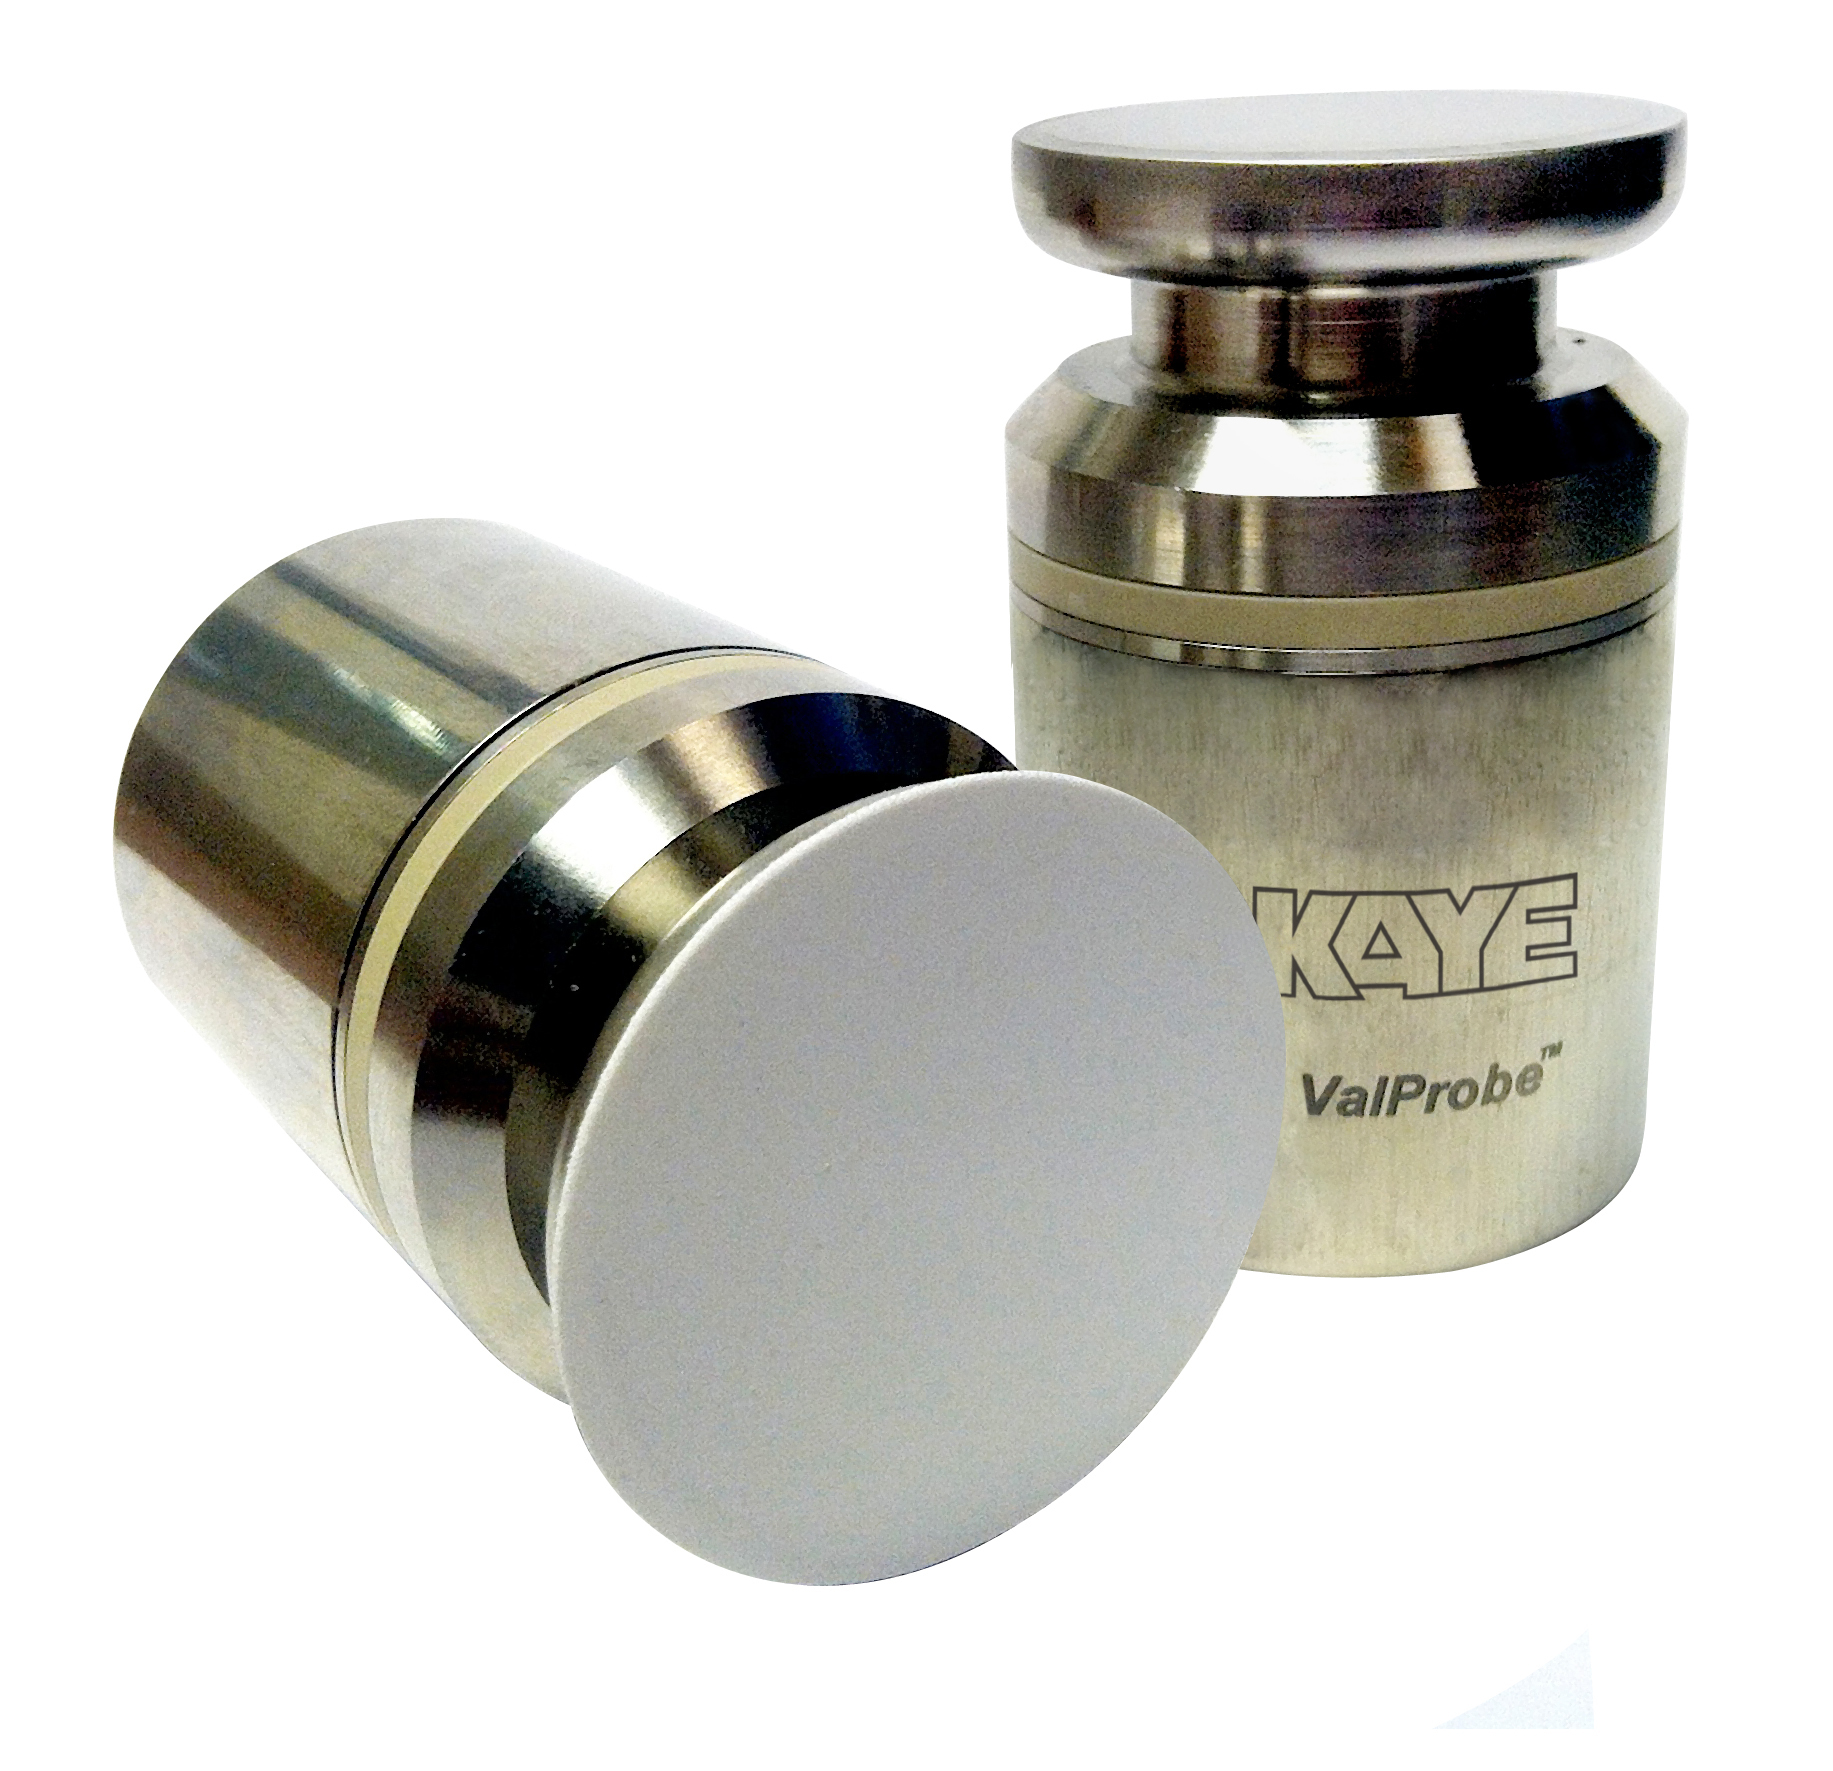 KAYE  ValProbe - Mesure de surface